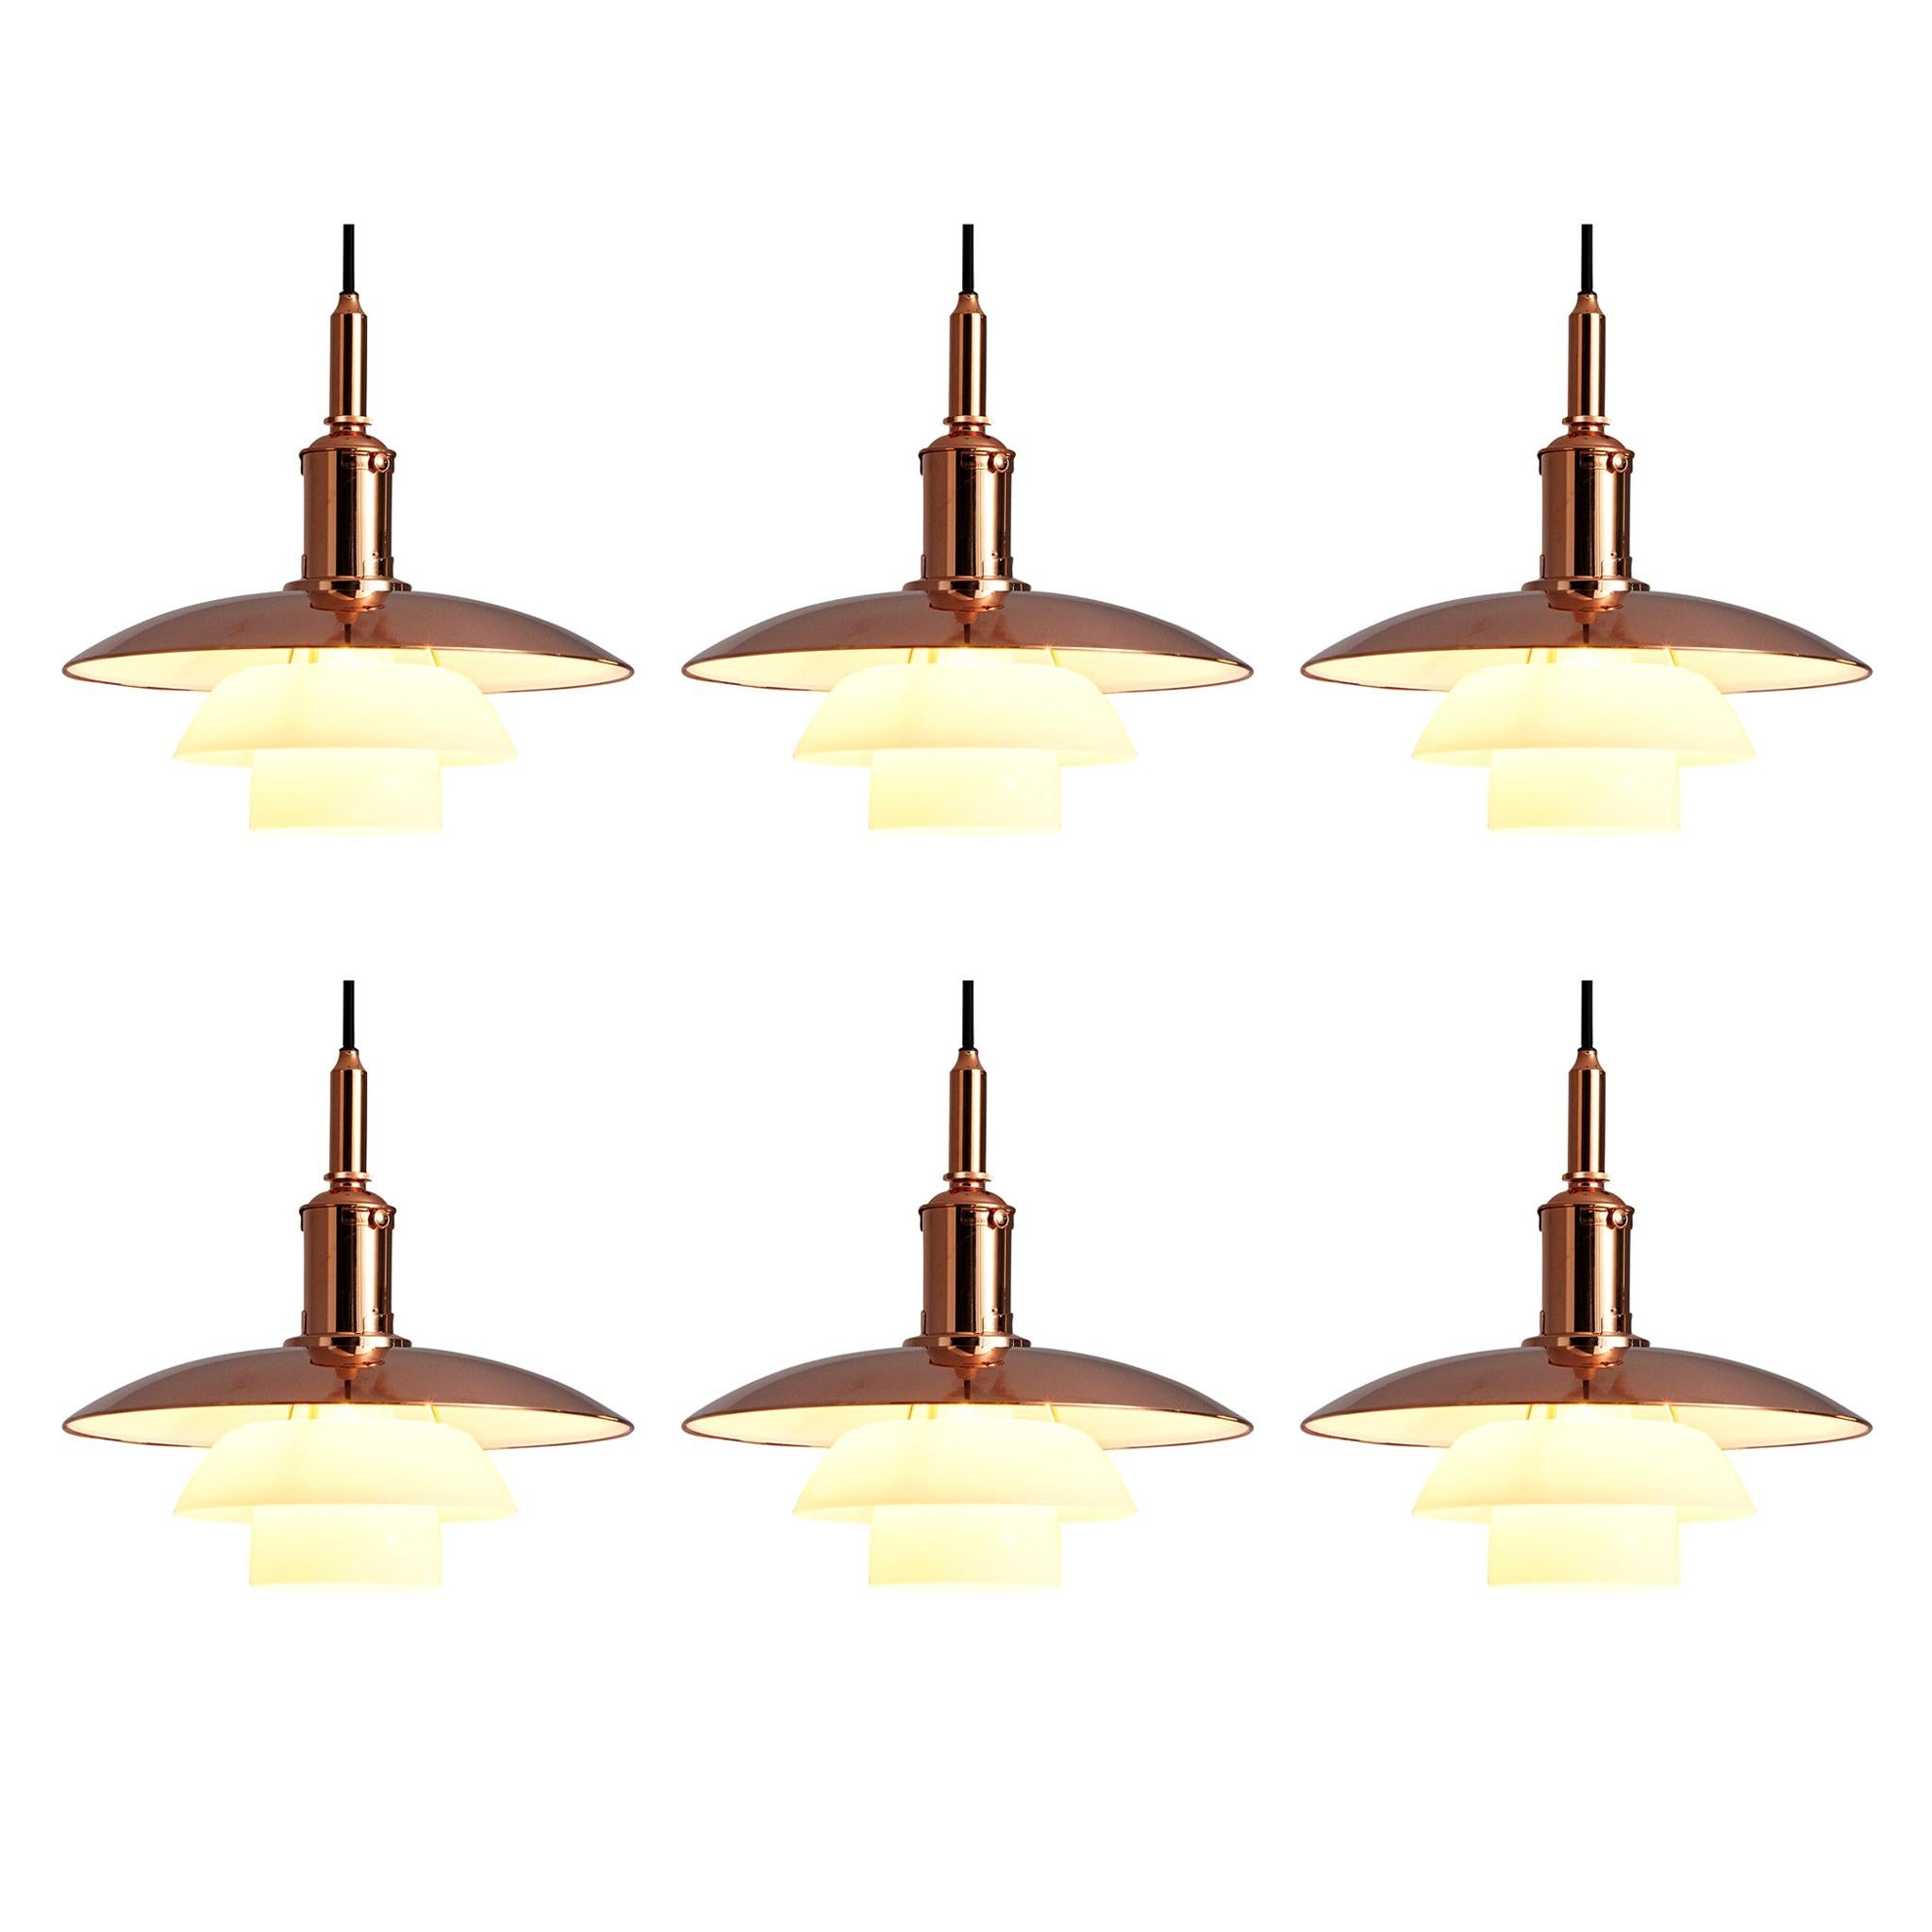 Limited Edition Poul Henningsen PH 3 1/2 Pendants in Copper